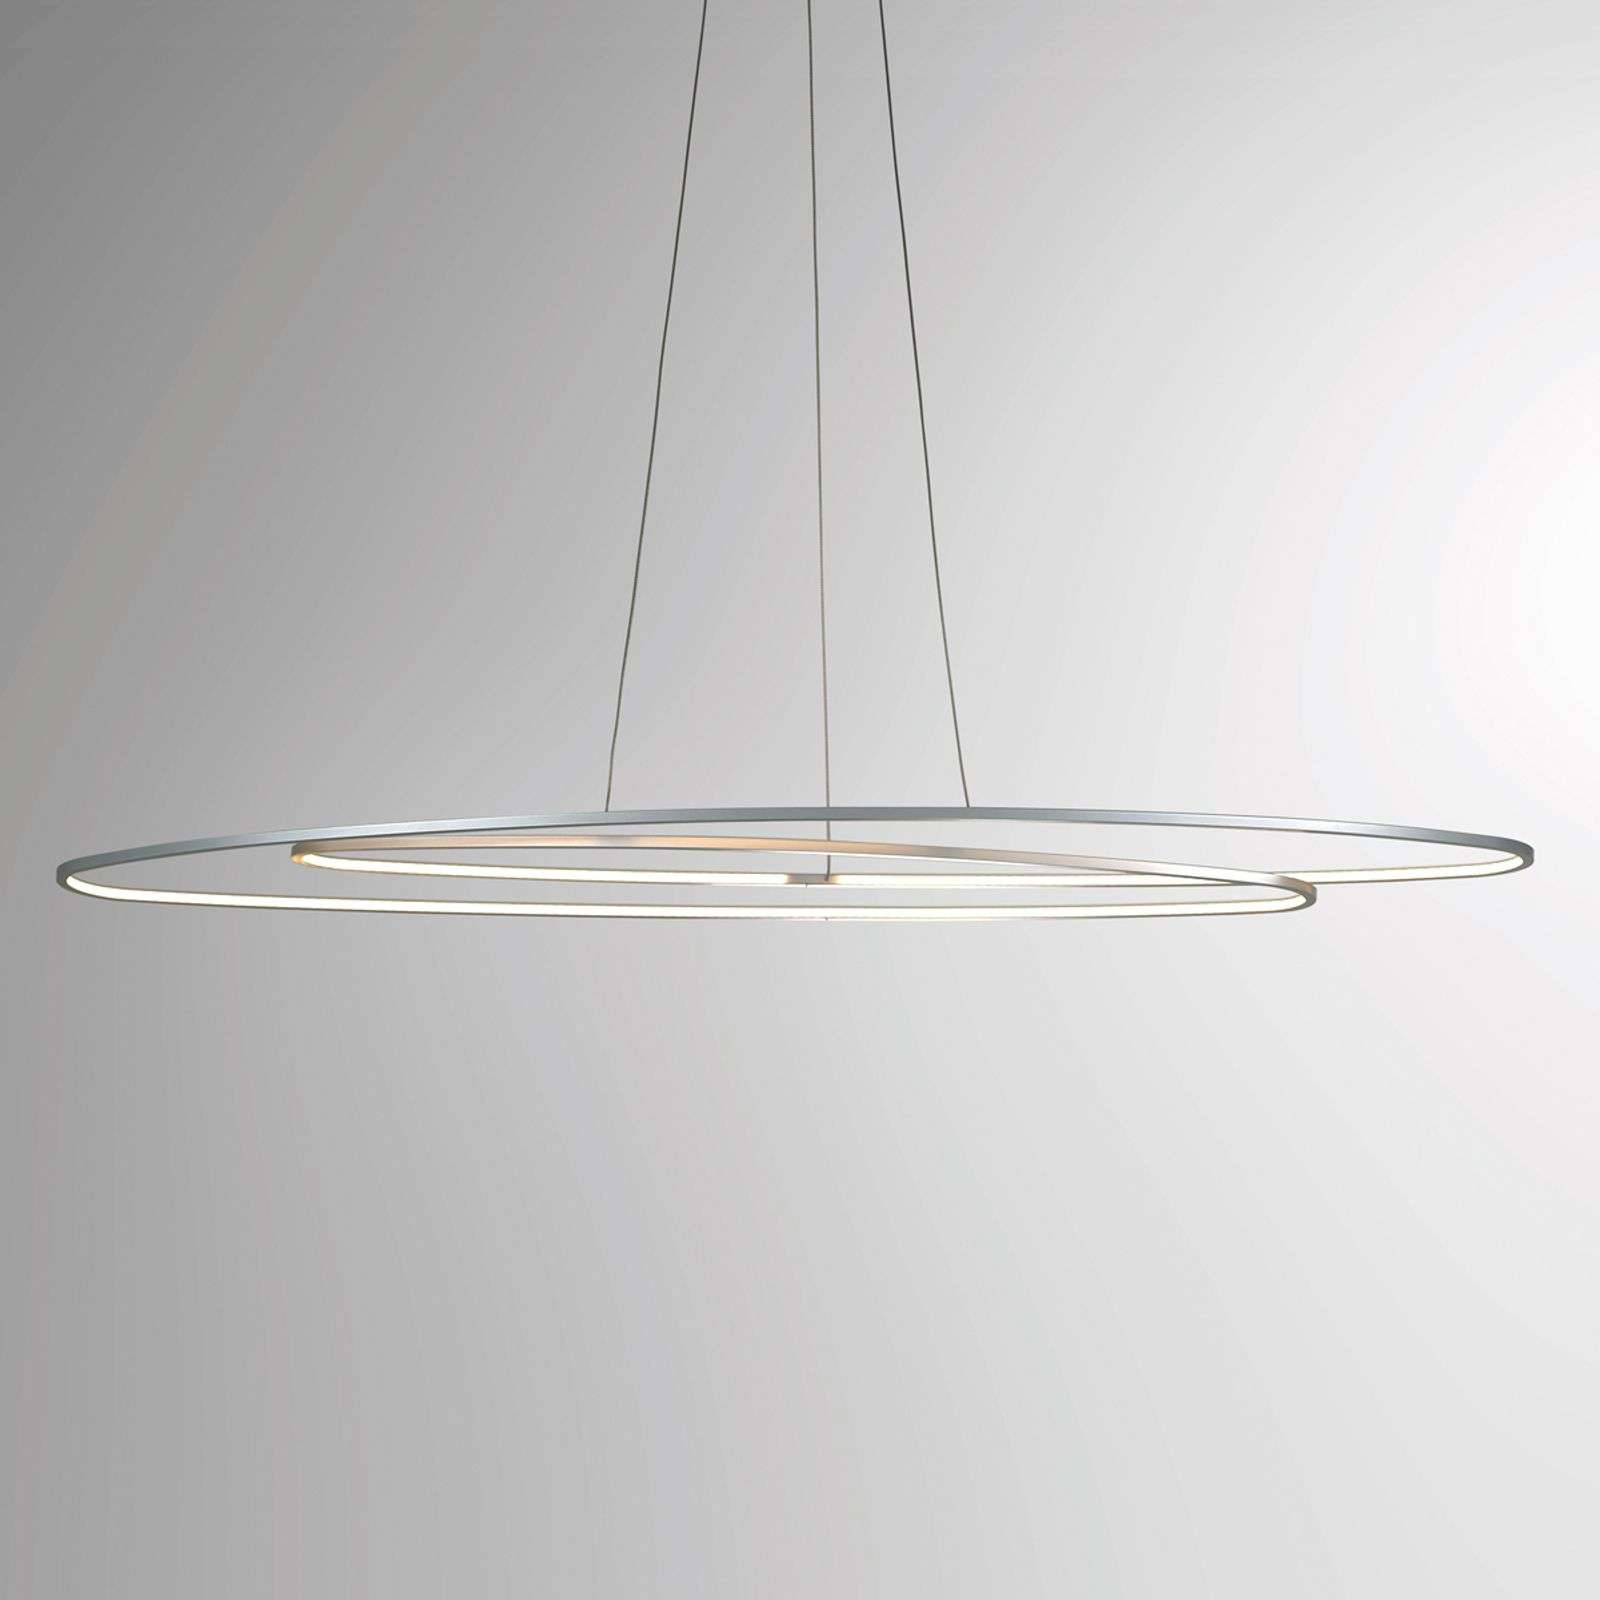 Suspension LED Slight de forme ovale, alu